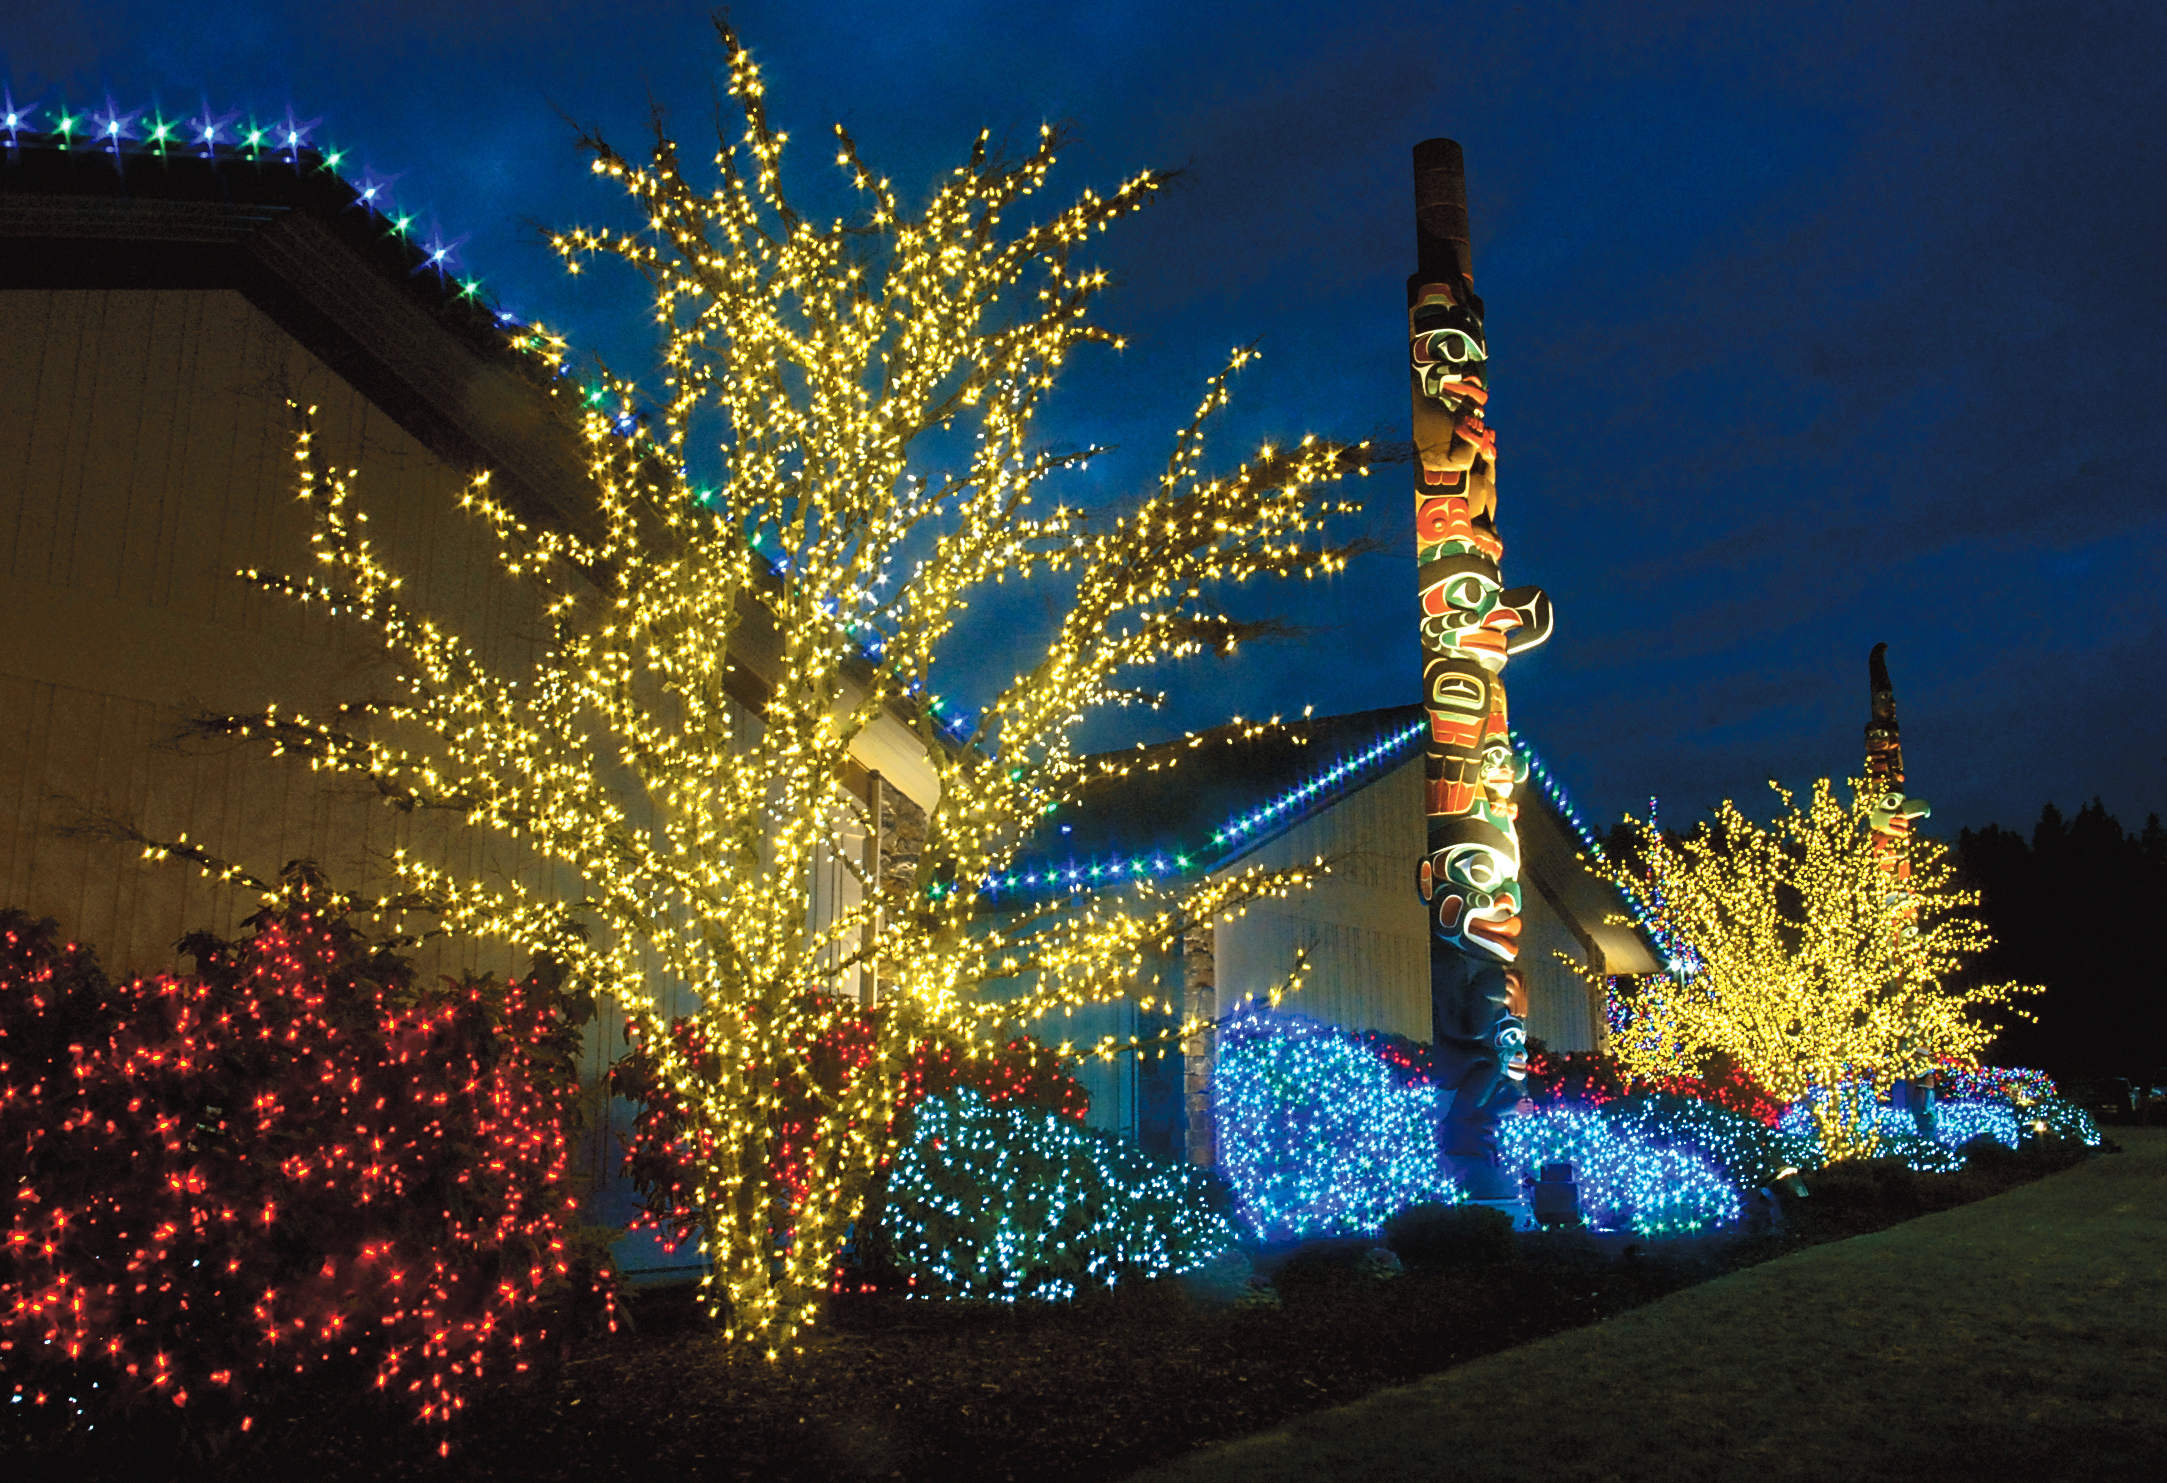 Christmas lights adorn the grounds at 7 Cedars Casino in Blyn during the holiday season. In the biggest light show on the North Olympic Peninsula and possibly the state